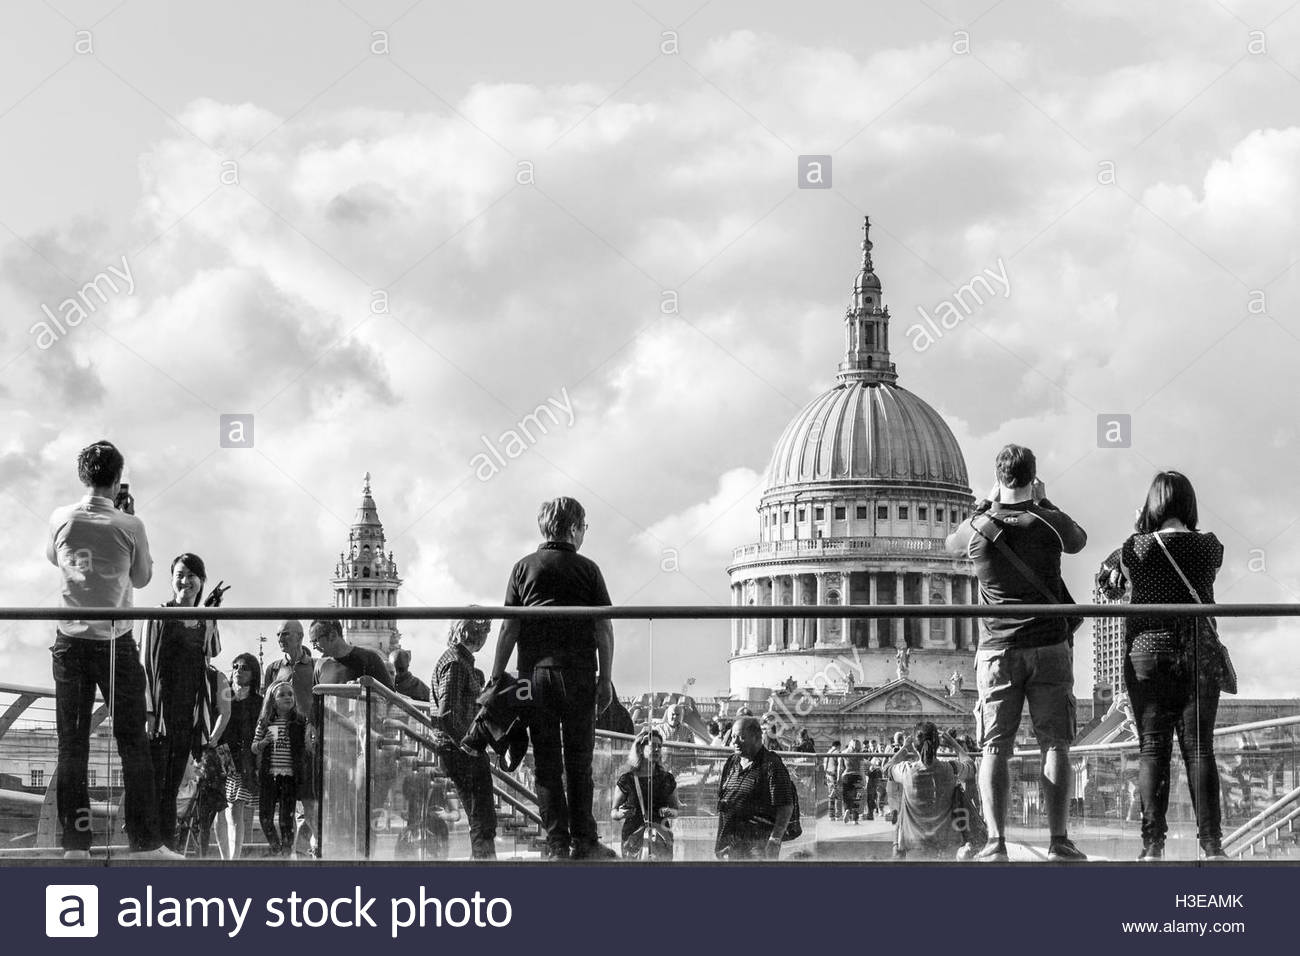 Black and white image of sightseers looking at and photographing St. Paul's Cathedral from the South side of - Stock Image